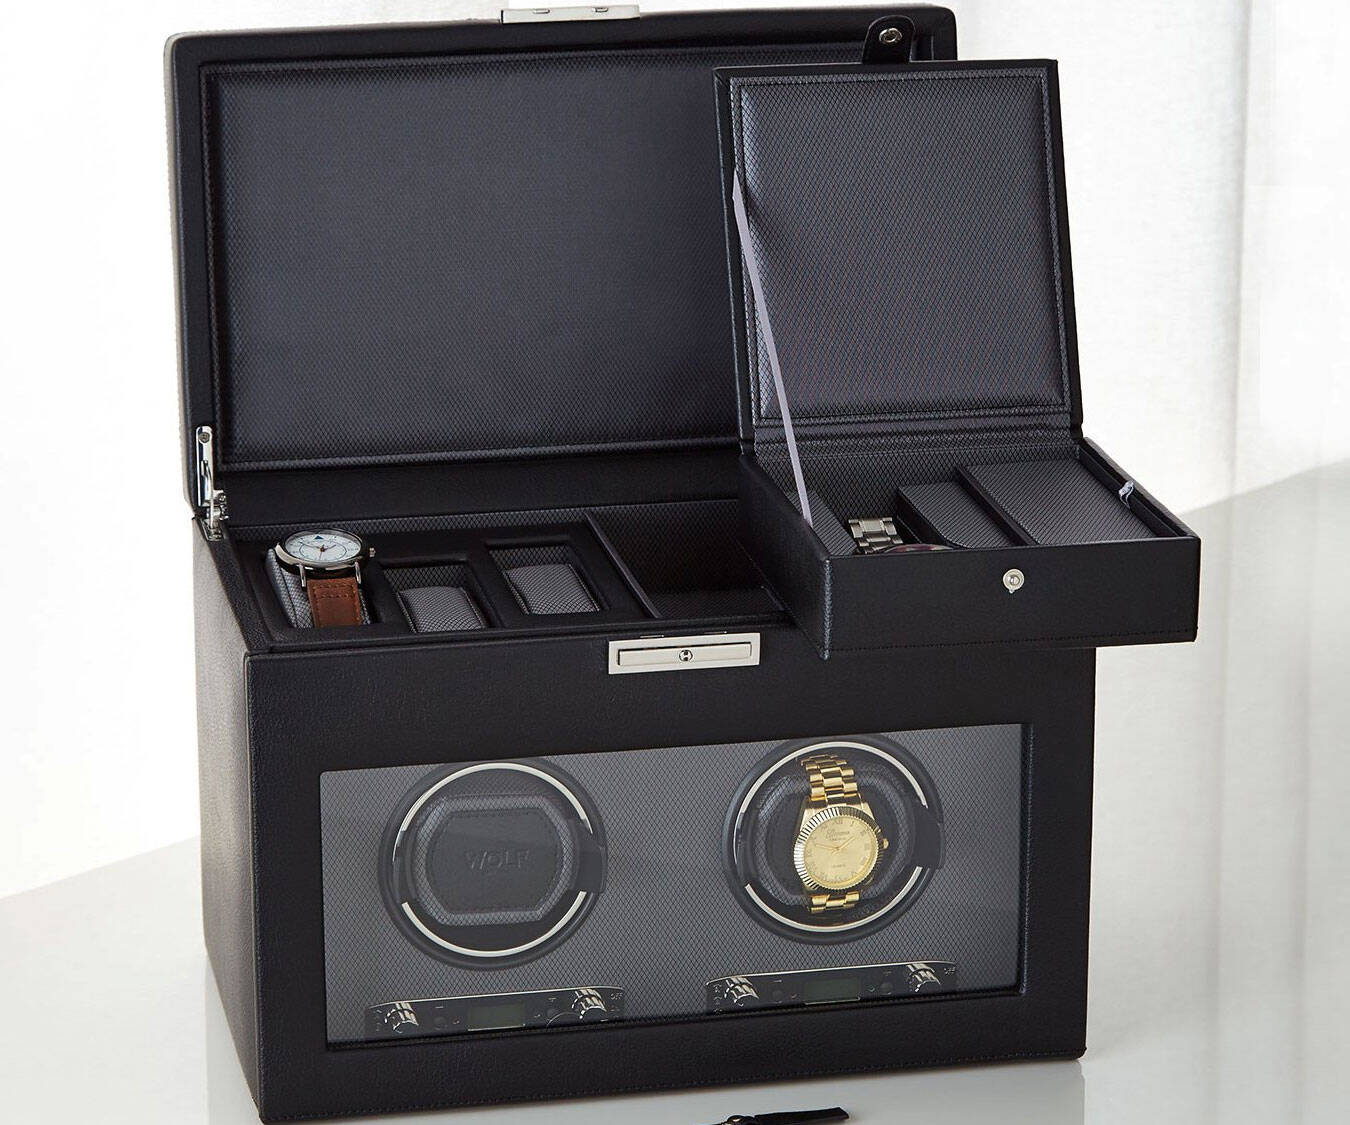 Viceroy Double Watch Winder & Storage - http://coolthings.us